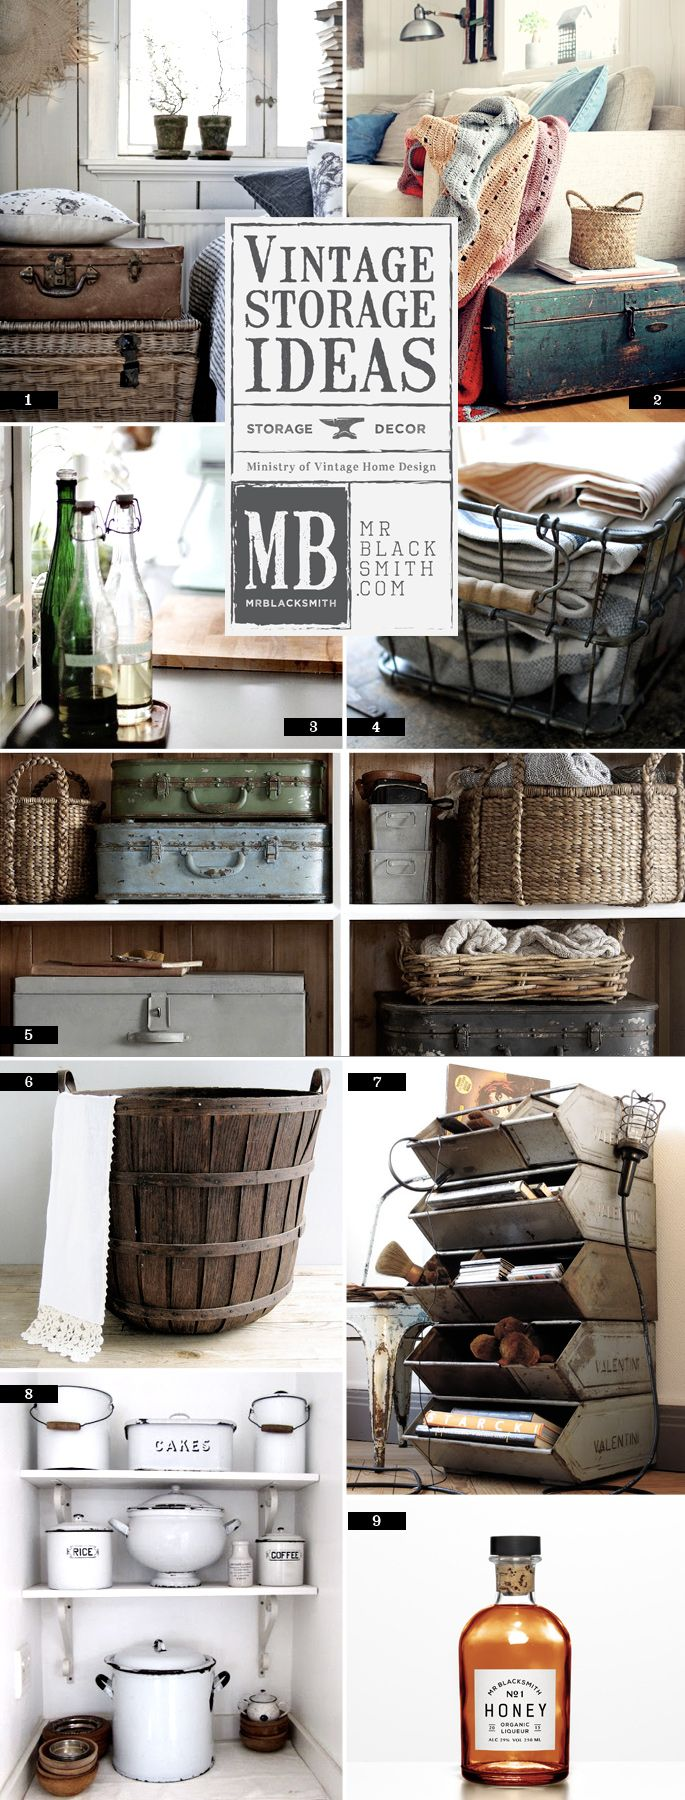 The 5 types of vintage storage and organization ideas